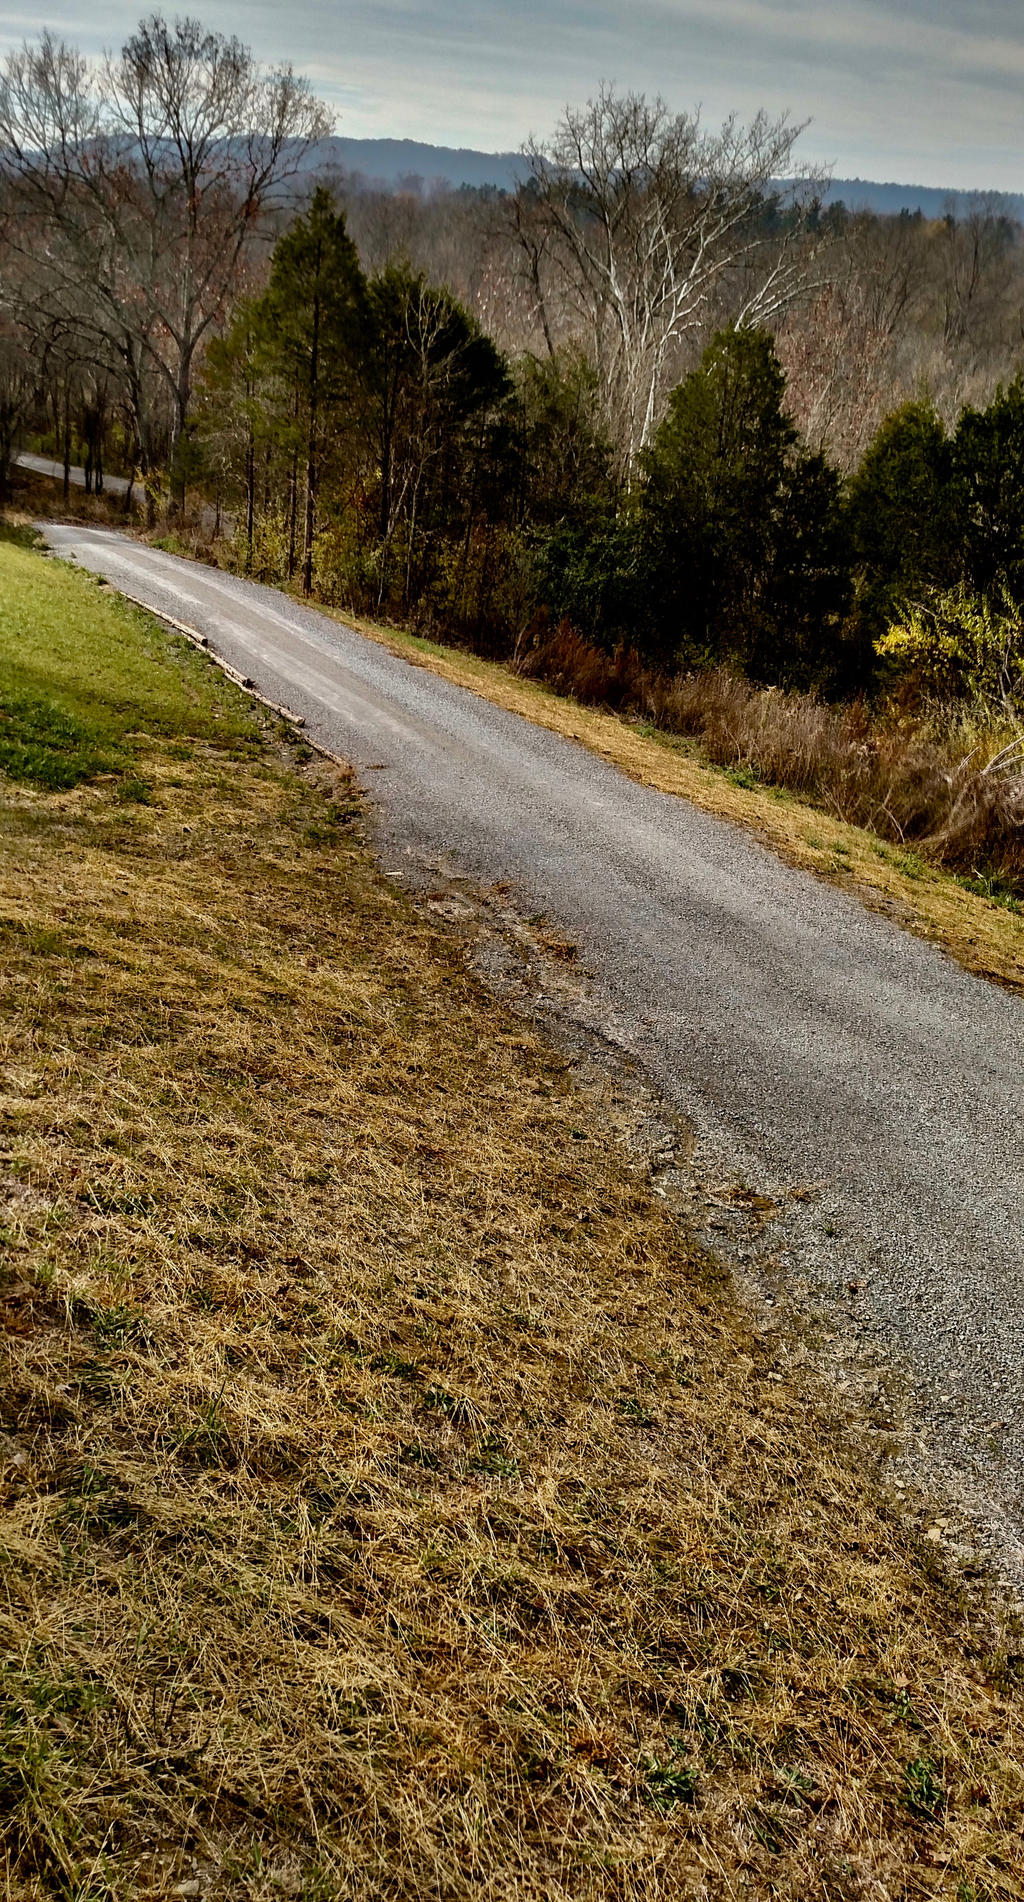 Kentucky Driveway 11/16 by acurmudgeon